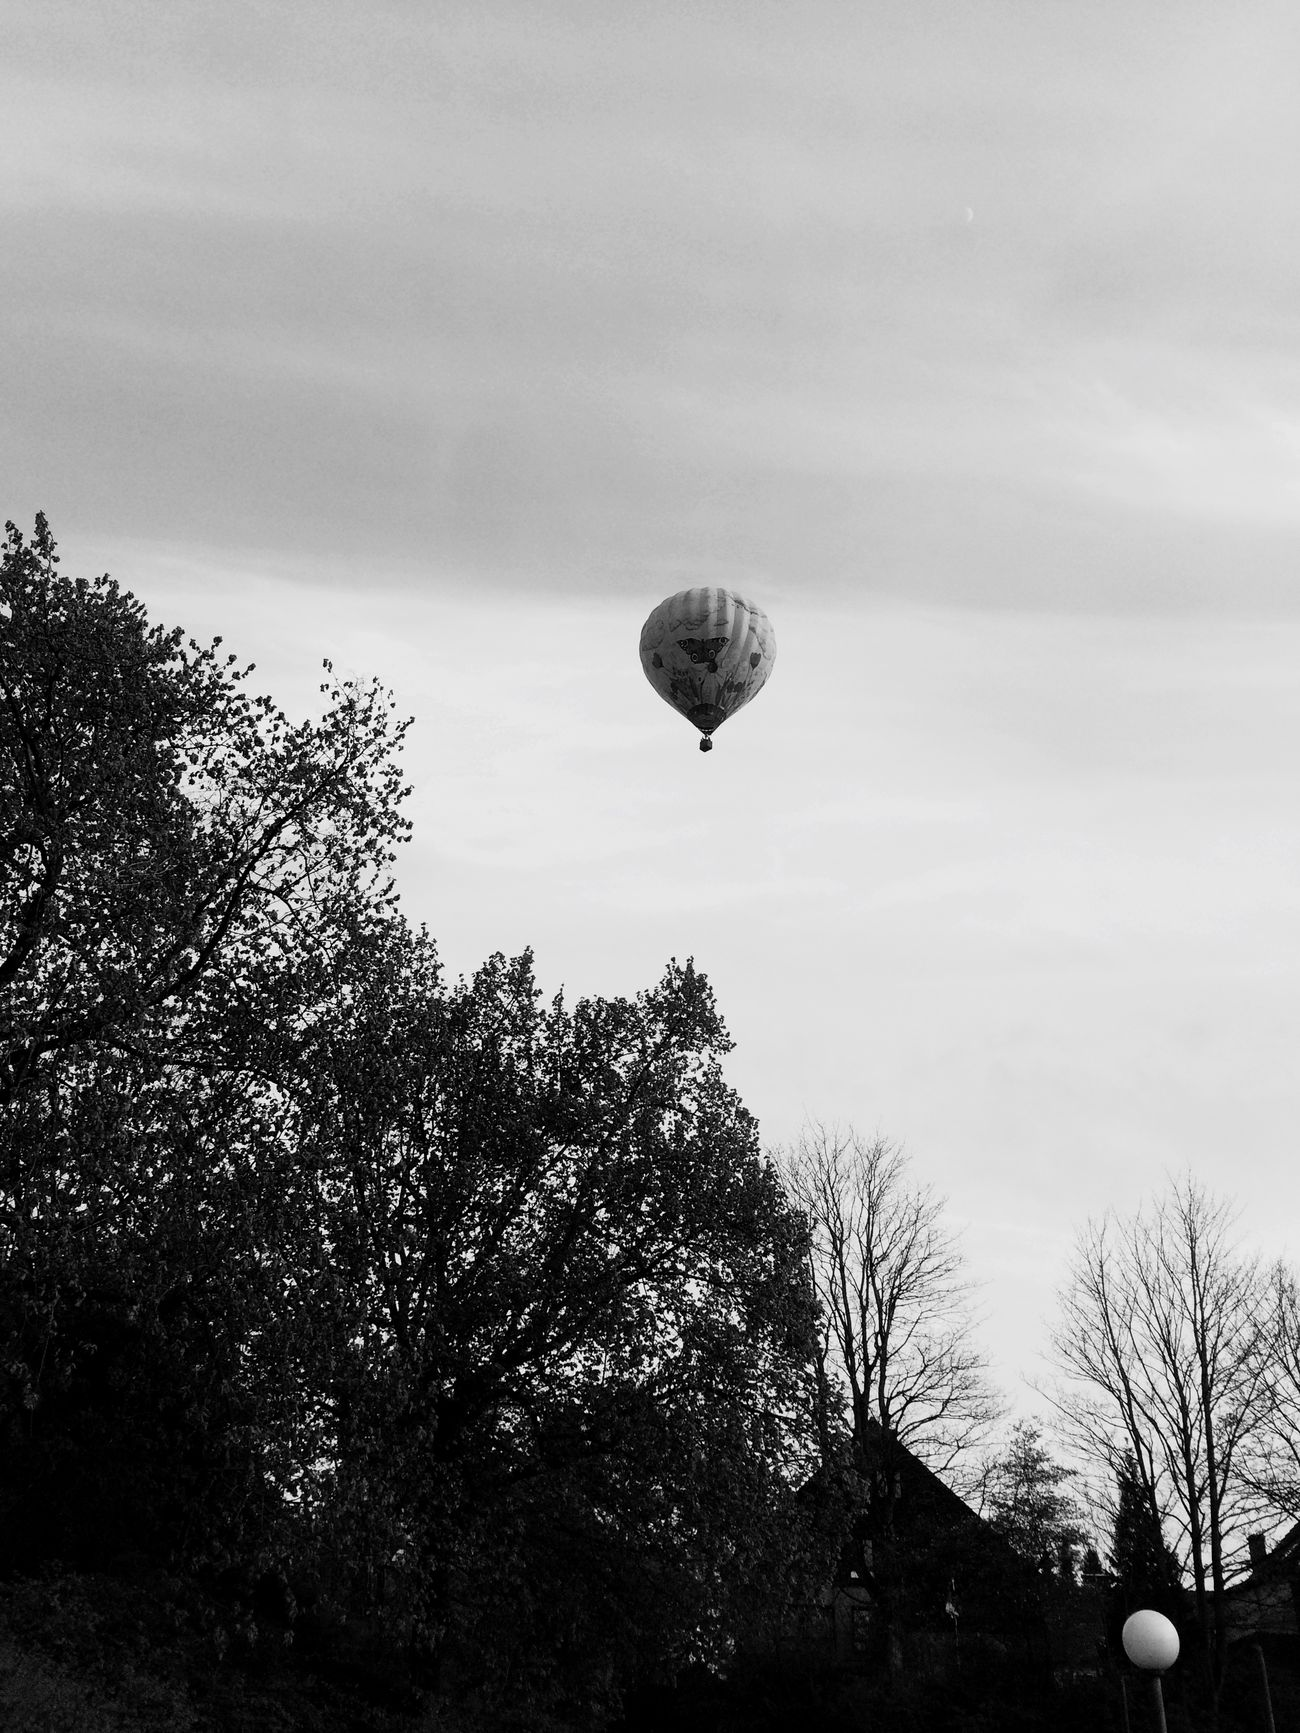 Sky And Clouds Hot Air Balloons Blackandwhite BTM Relaxing